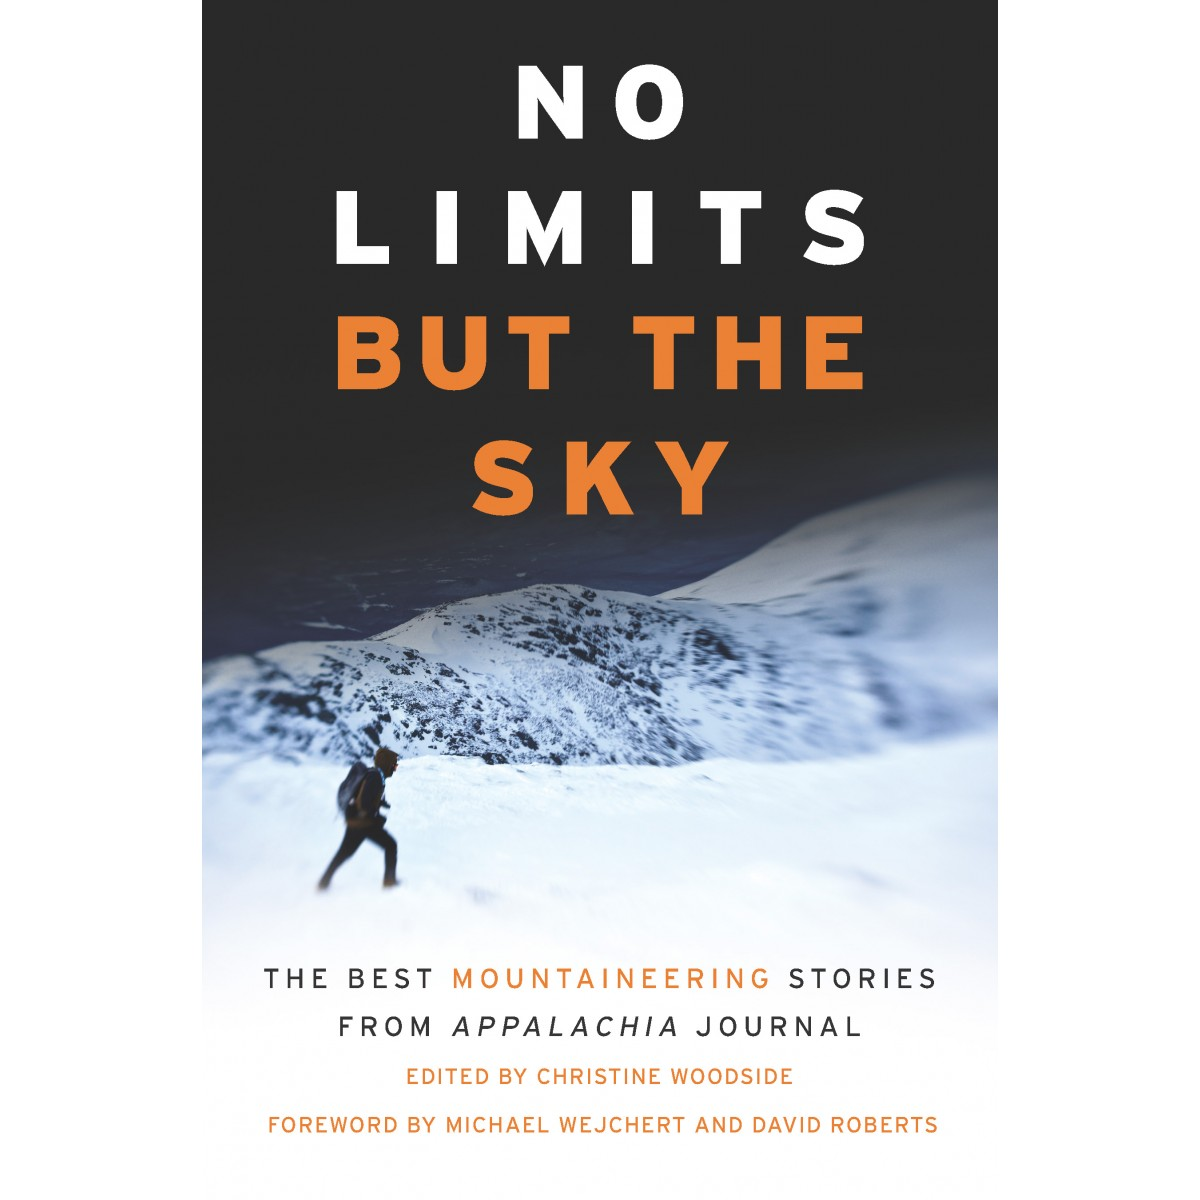 No Limits But the Sky